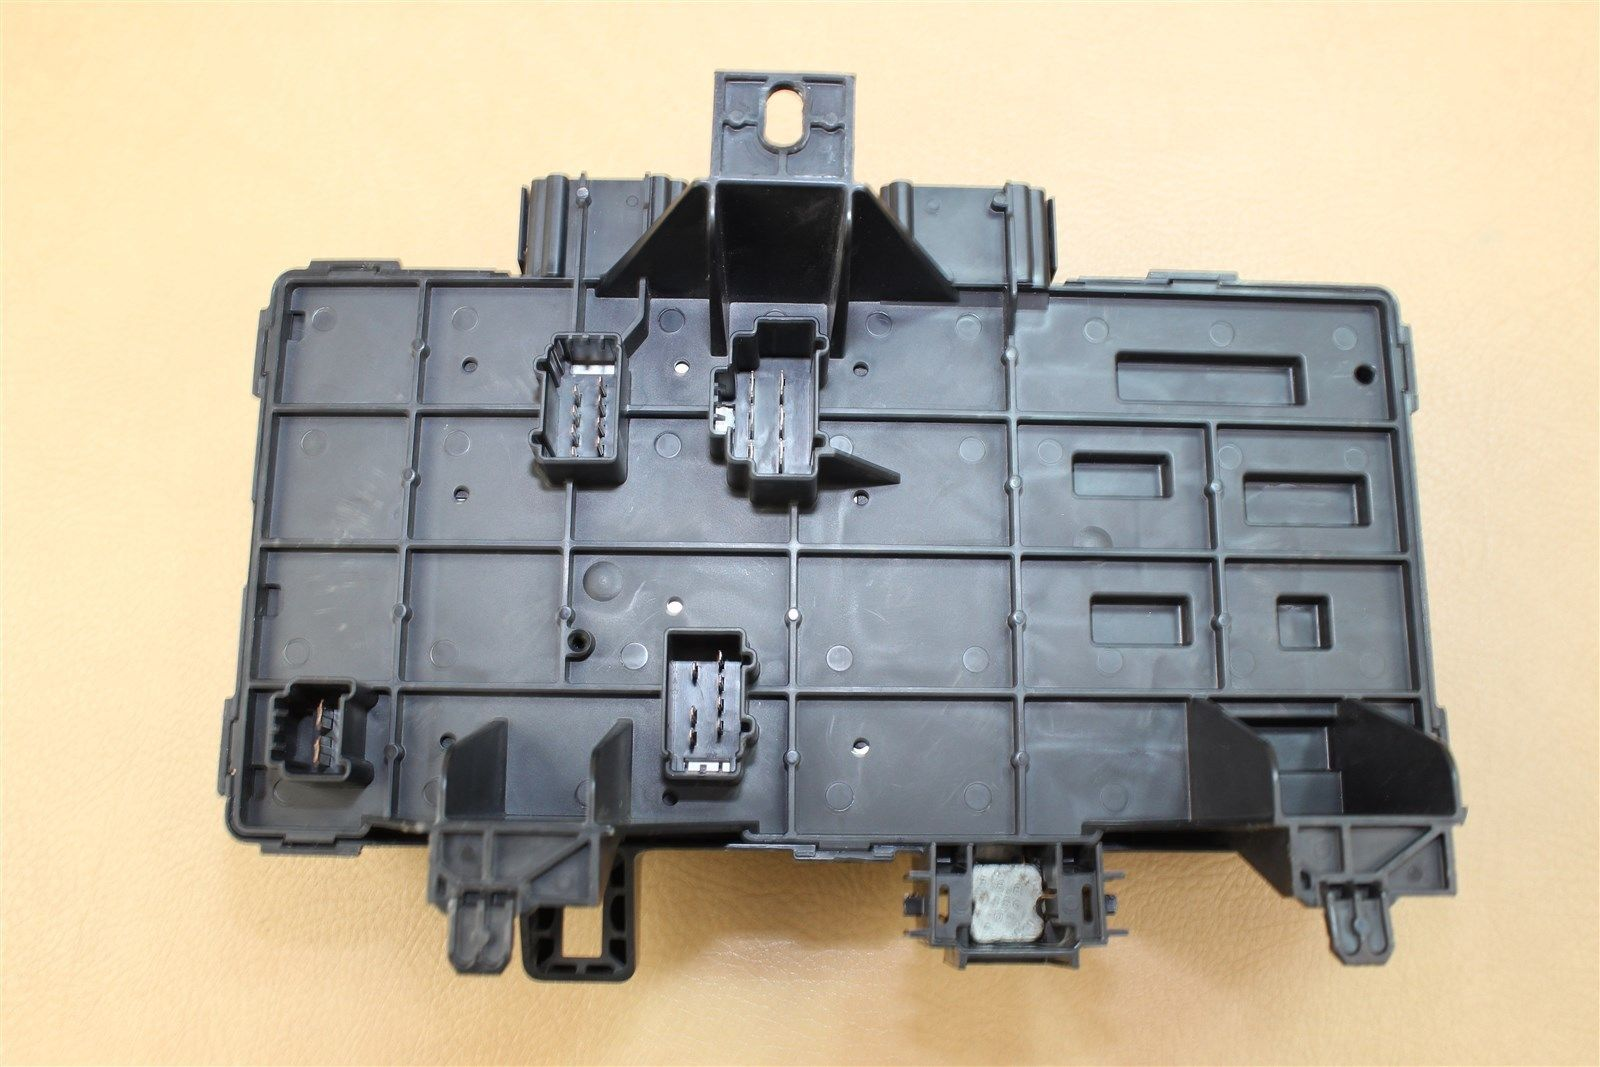 Reman 03 Navigator Expedition Fuse Box Module Power Distribution 2003 3l7t 14a067 Aa Does Not